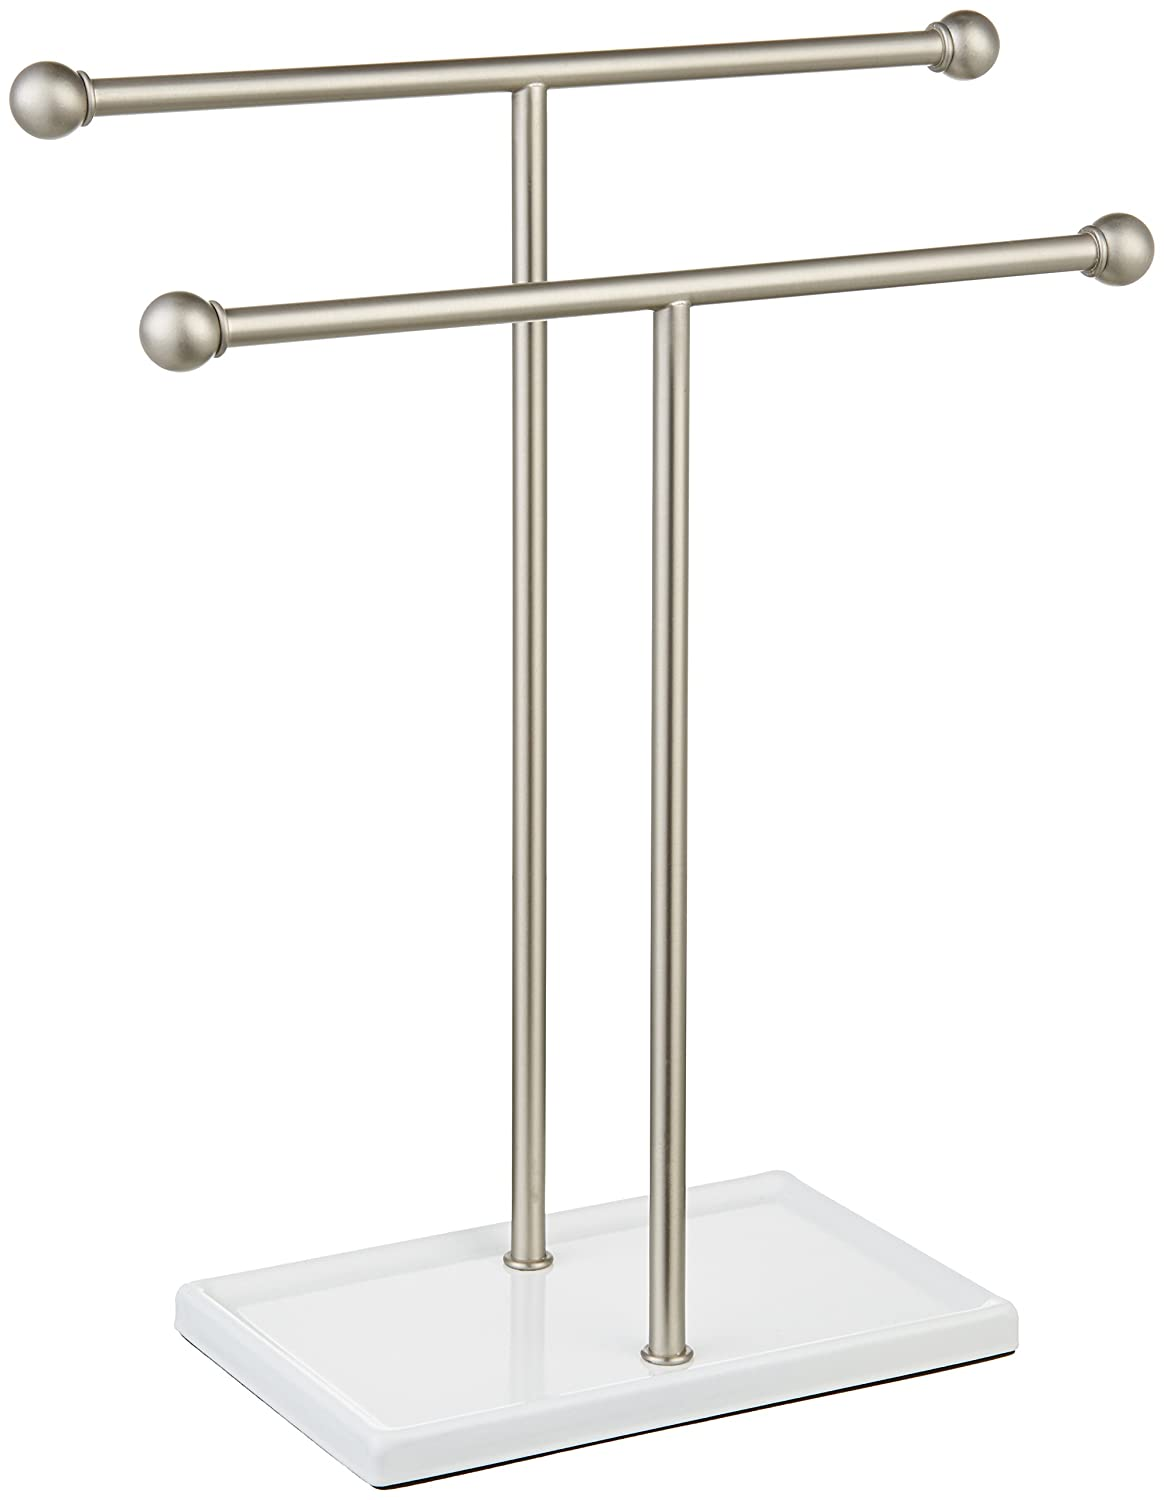 AmazonBasics Double-T Hand Towel and Accessories Stand - Nickel/White